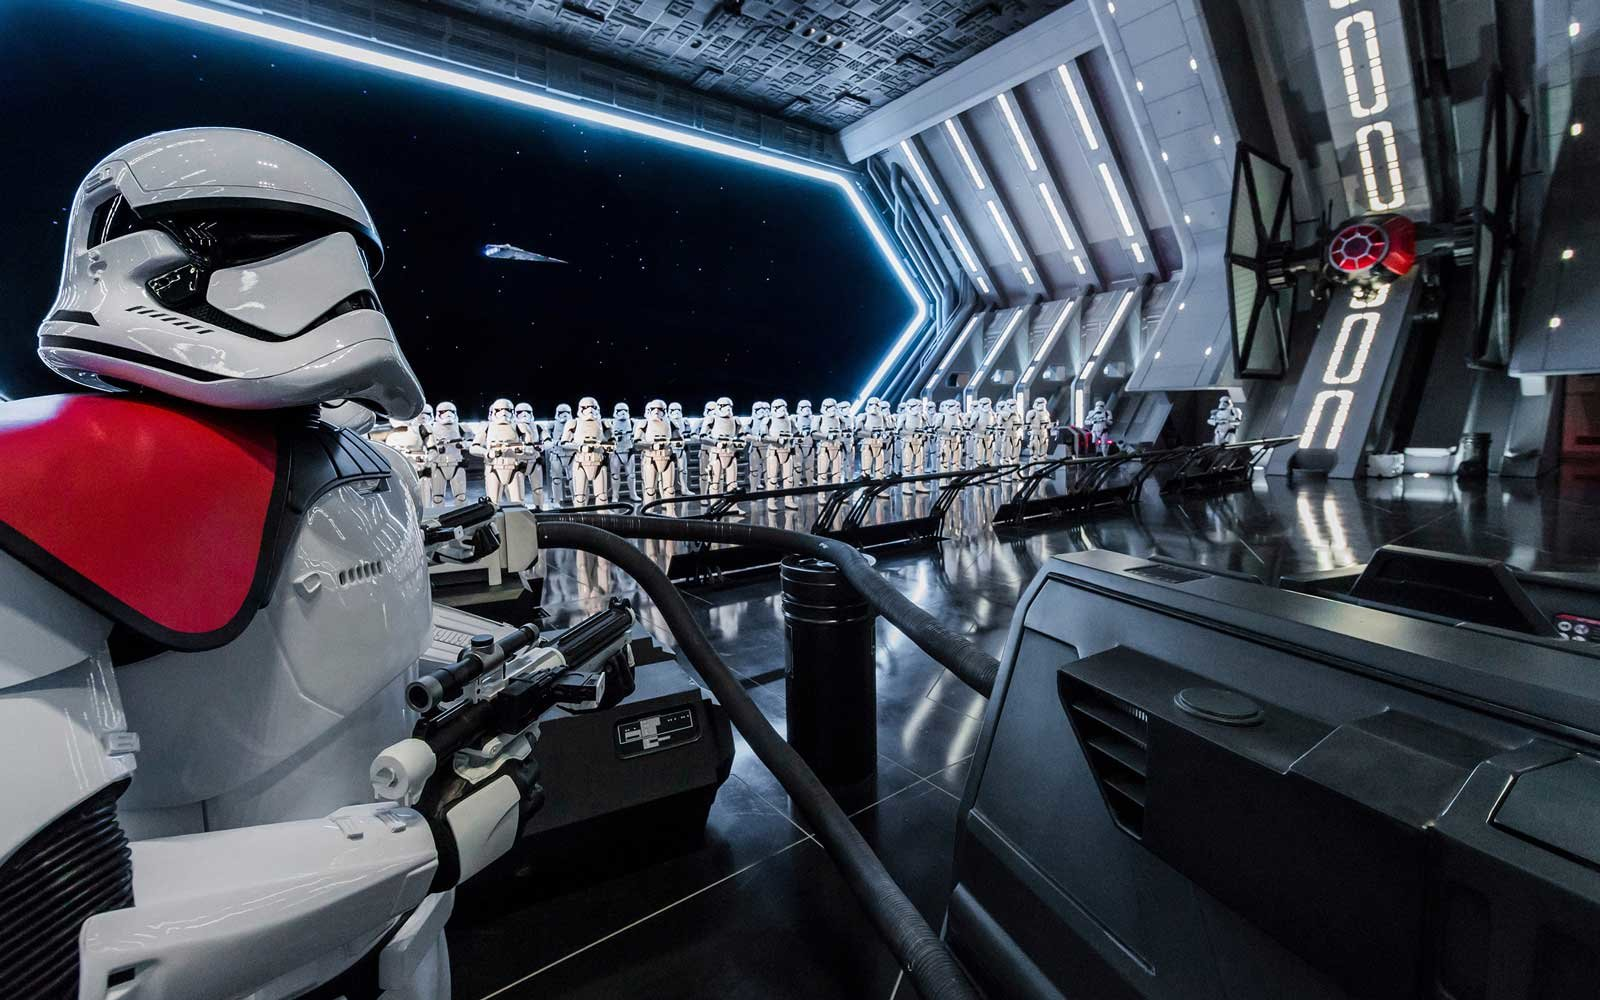 Disney finally released details on Rise of the Resistance — the best Star Wars ride of all